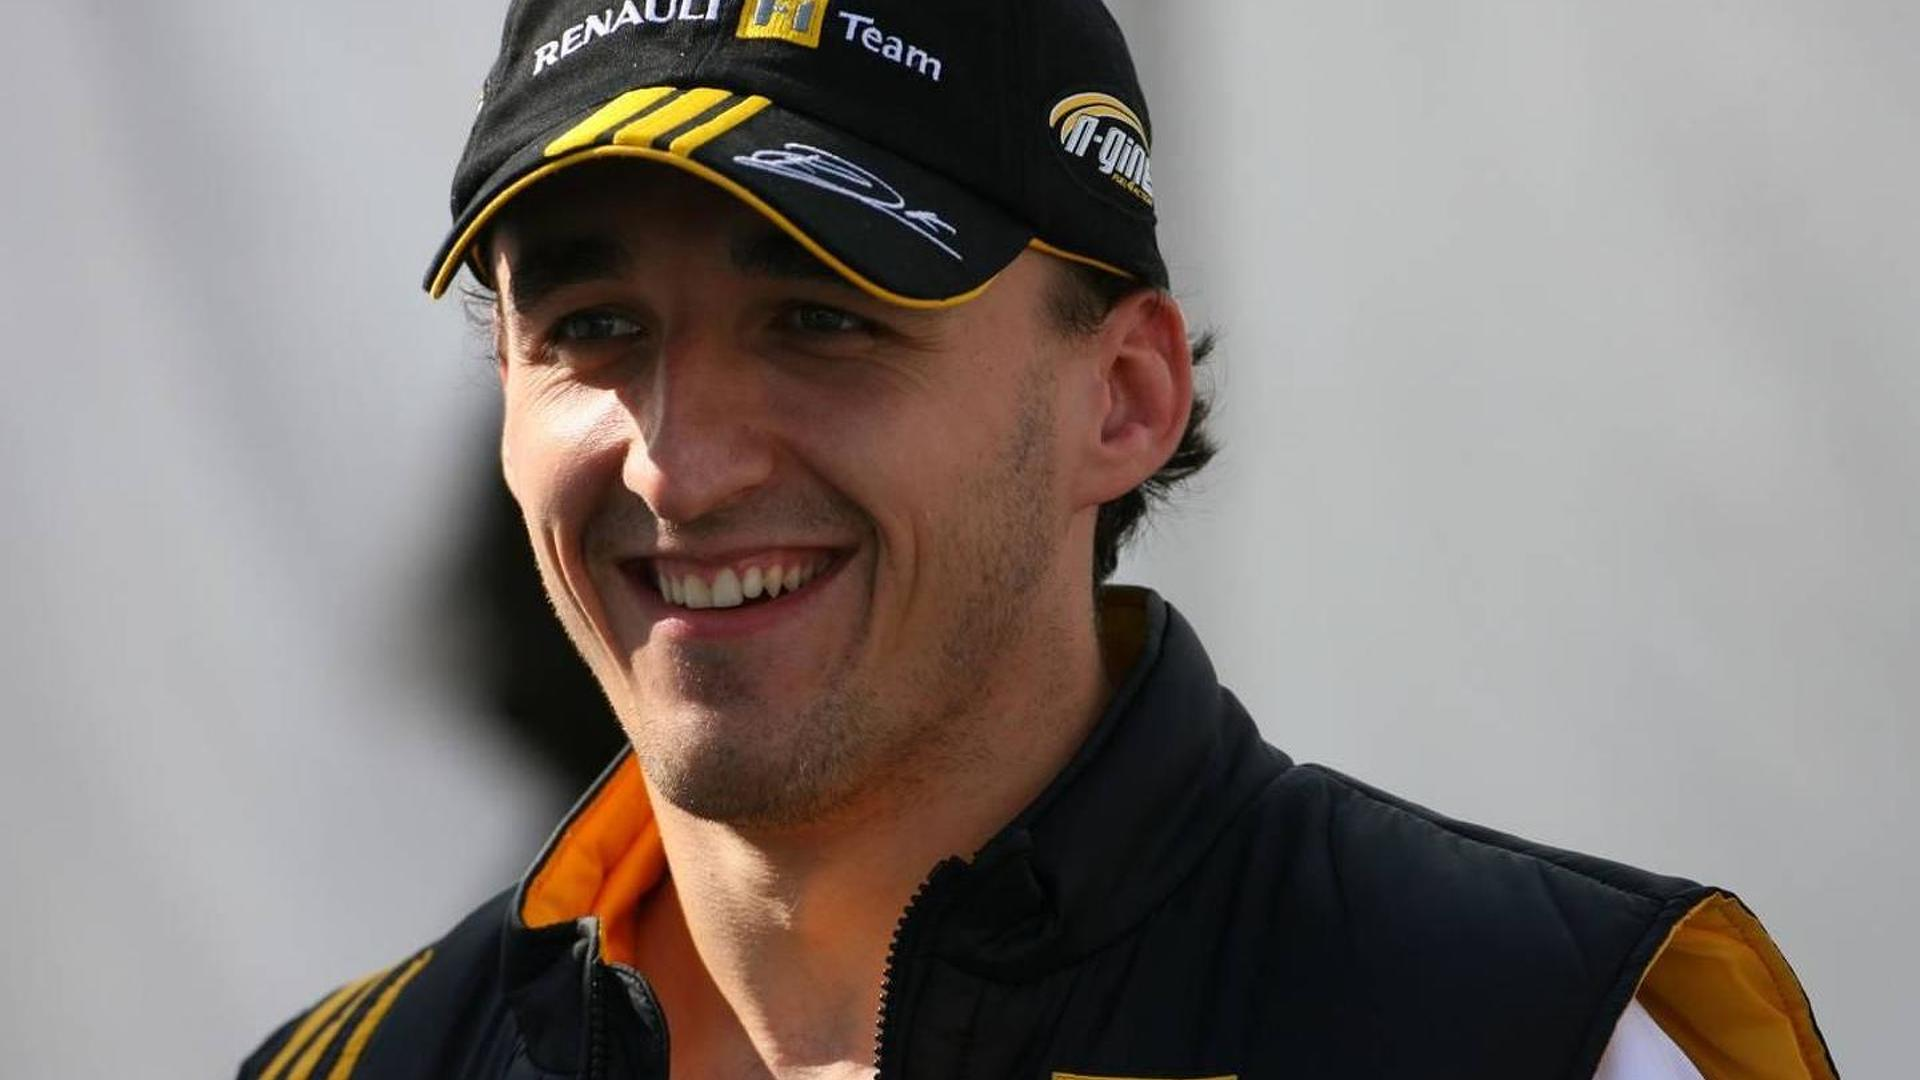 Kubica set to stay at Renault in 2011